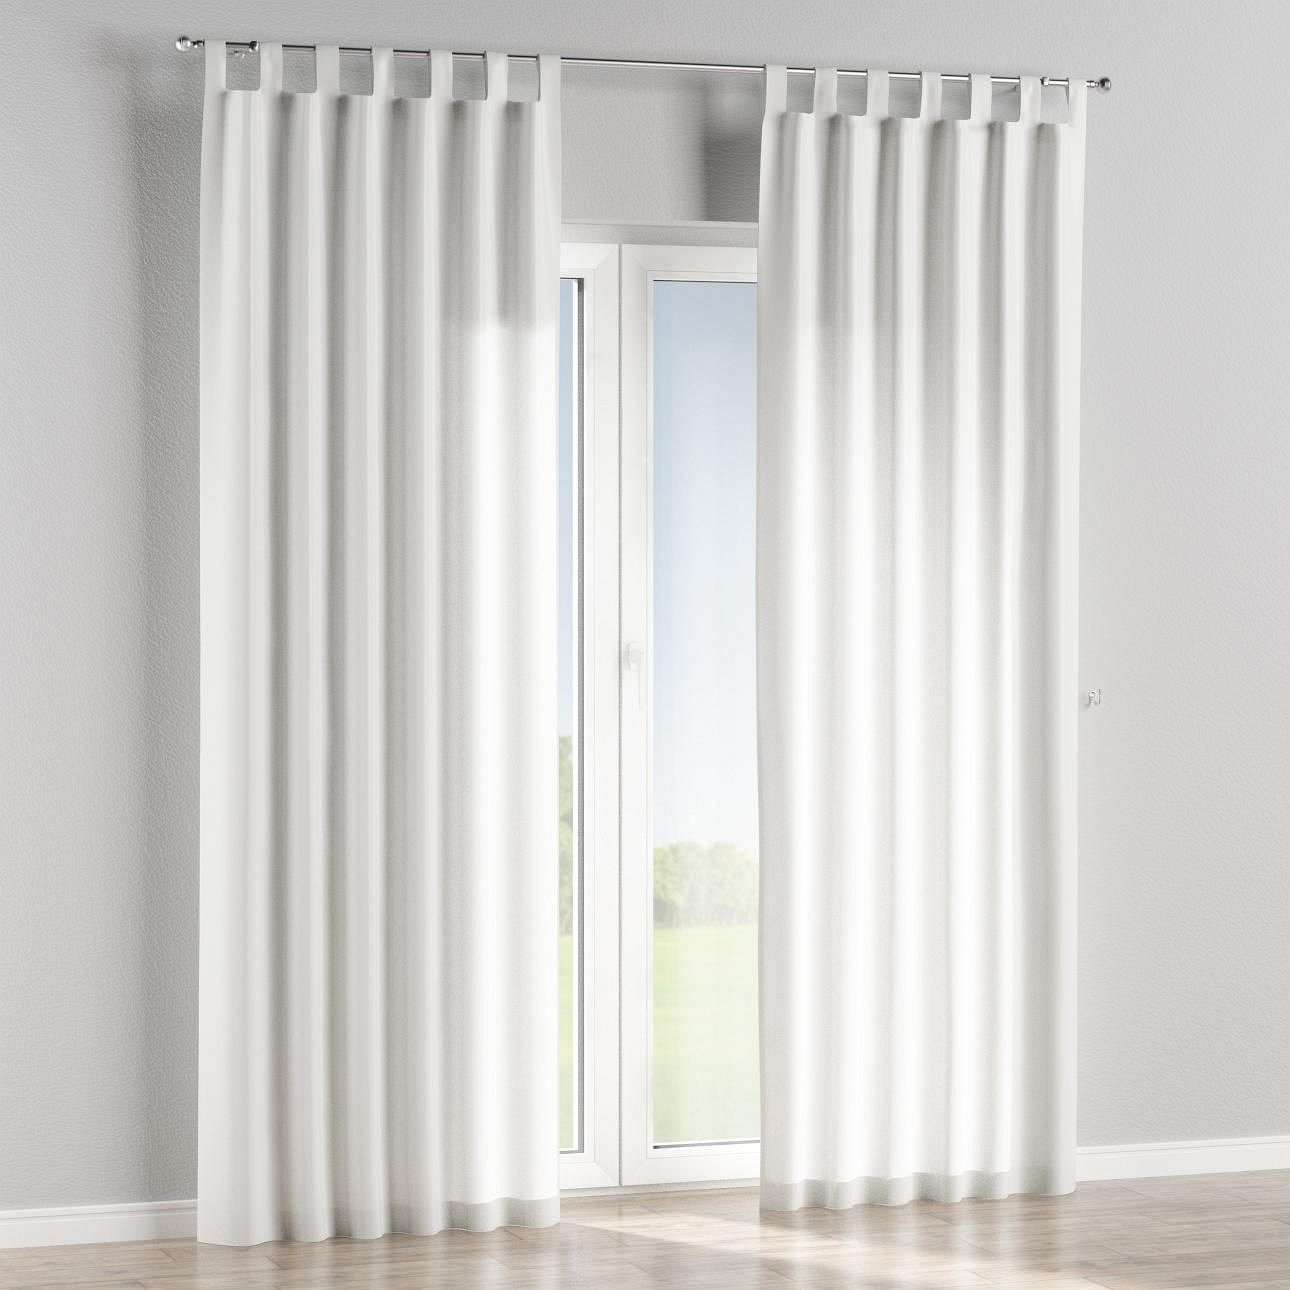 Tab top curtains in collection Fleur , fabric: 139-05